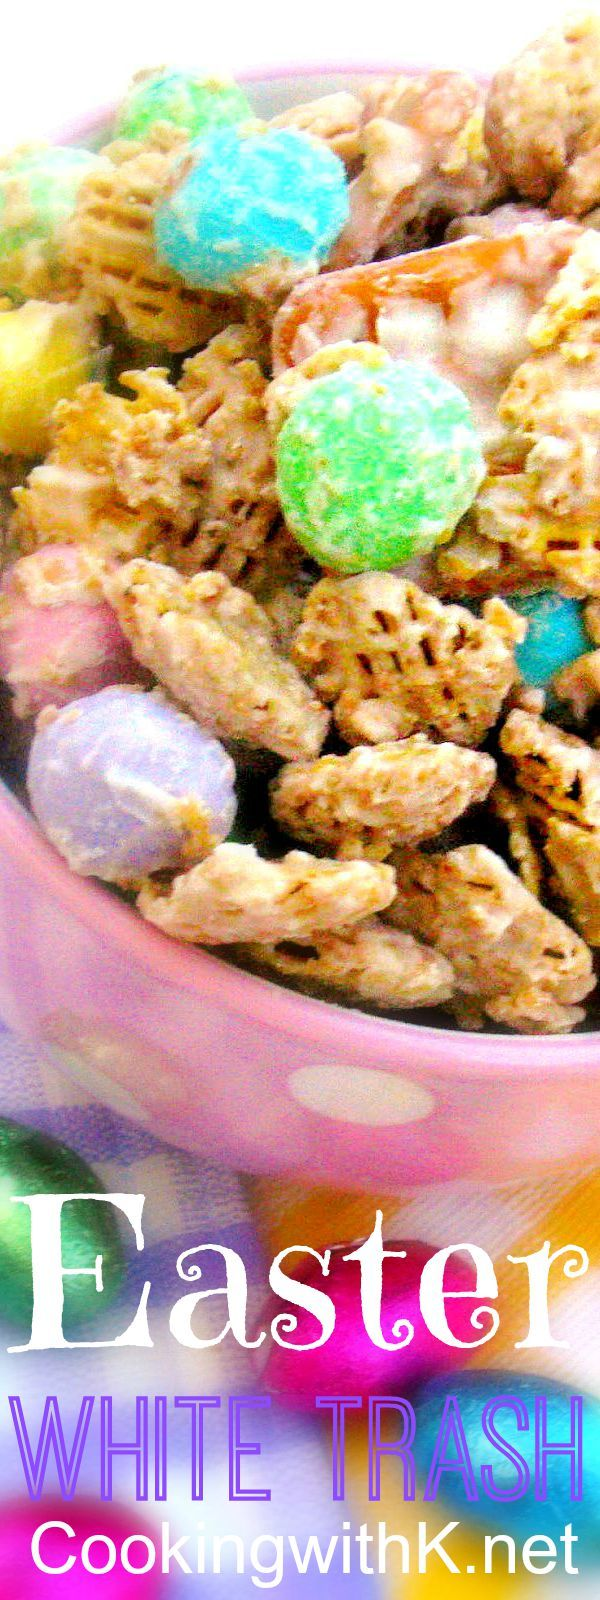 Cooking with K - Southern Kitchen Happenings: Easter White Trash and Cute Gift bags